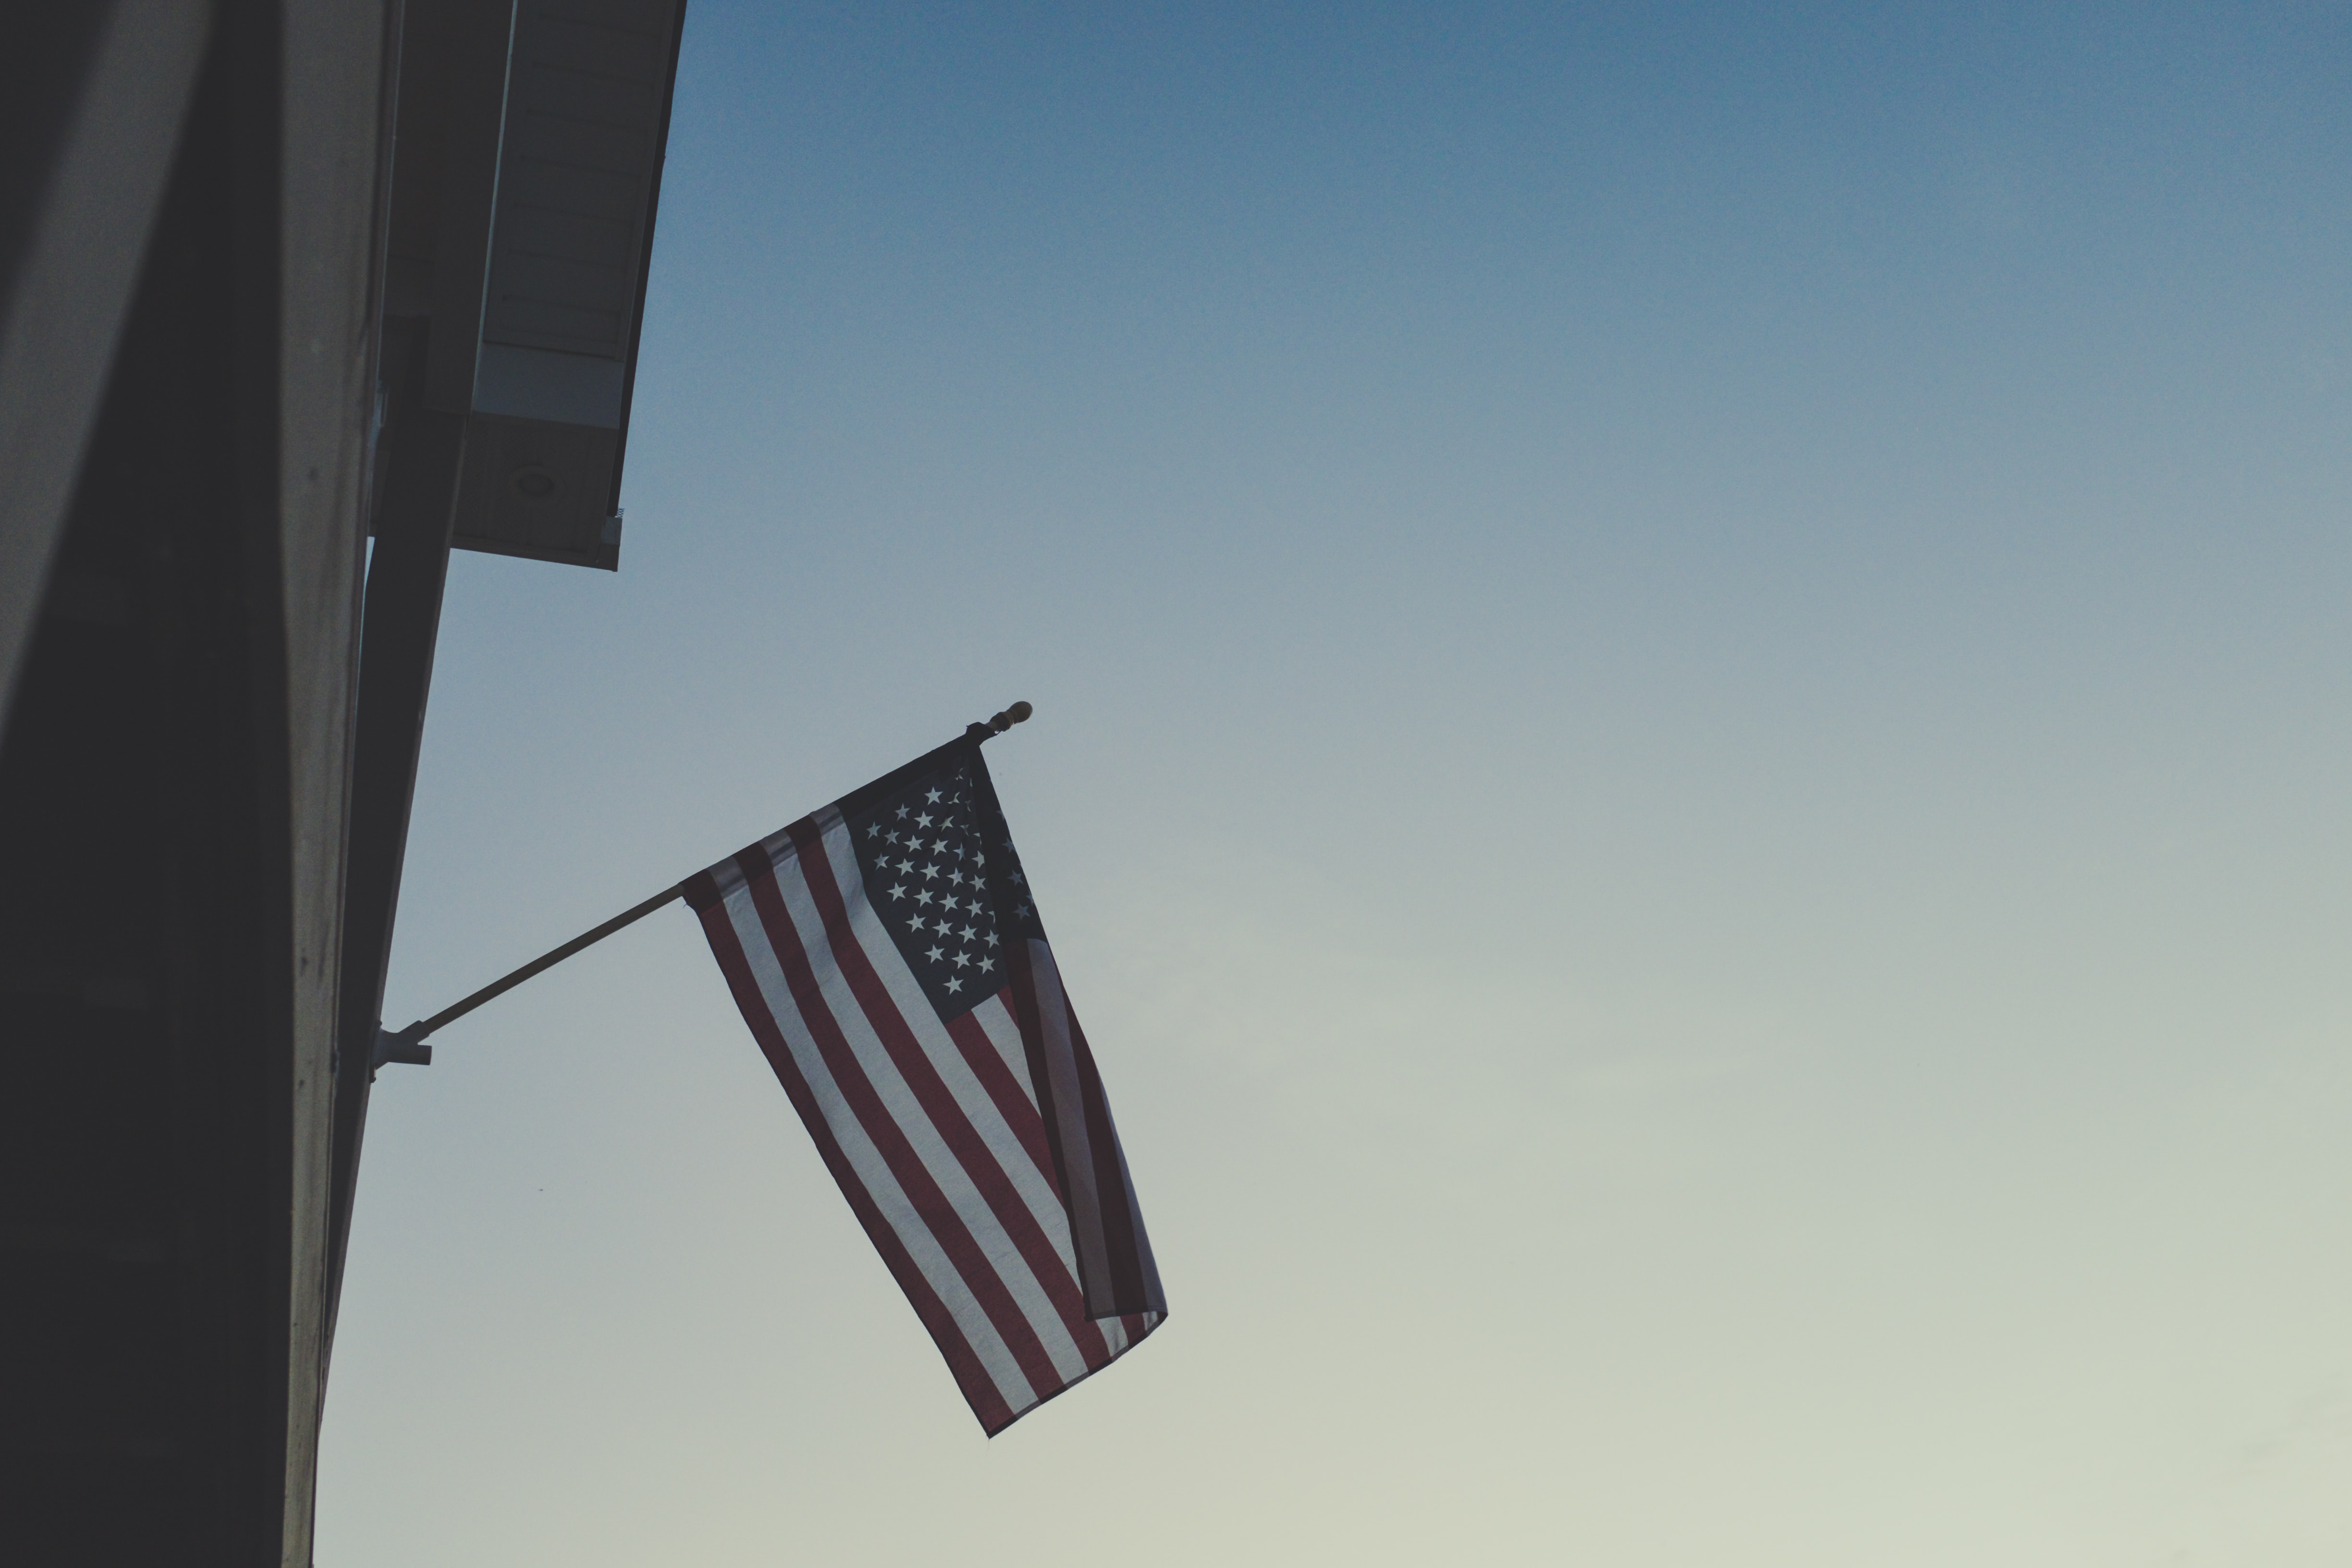 American flag flies off the side of a building in dim light